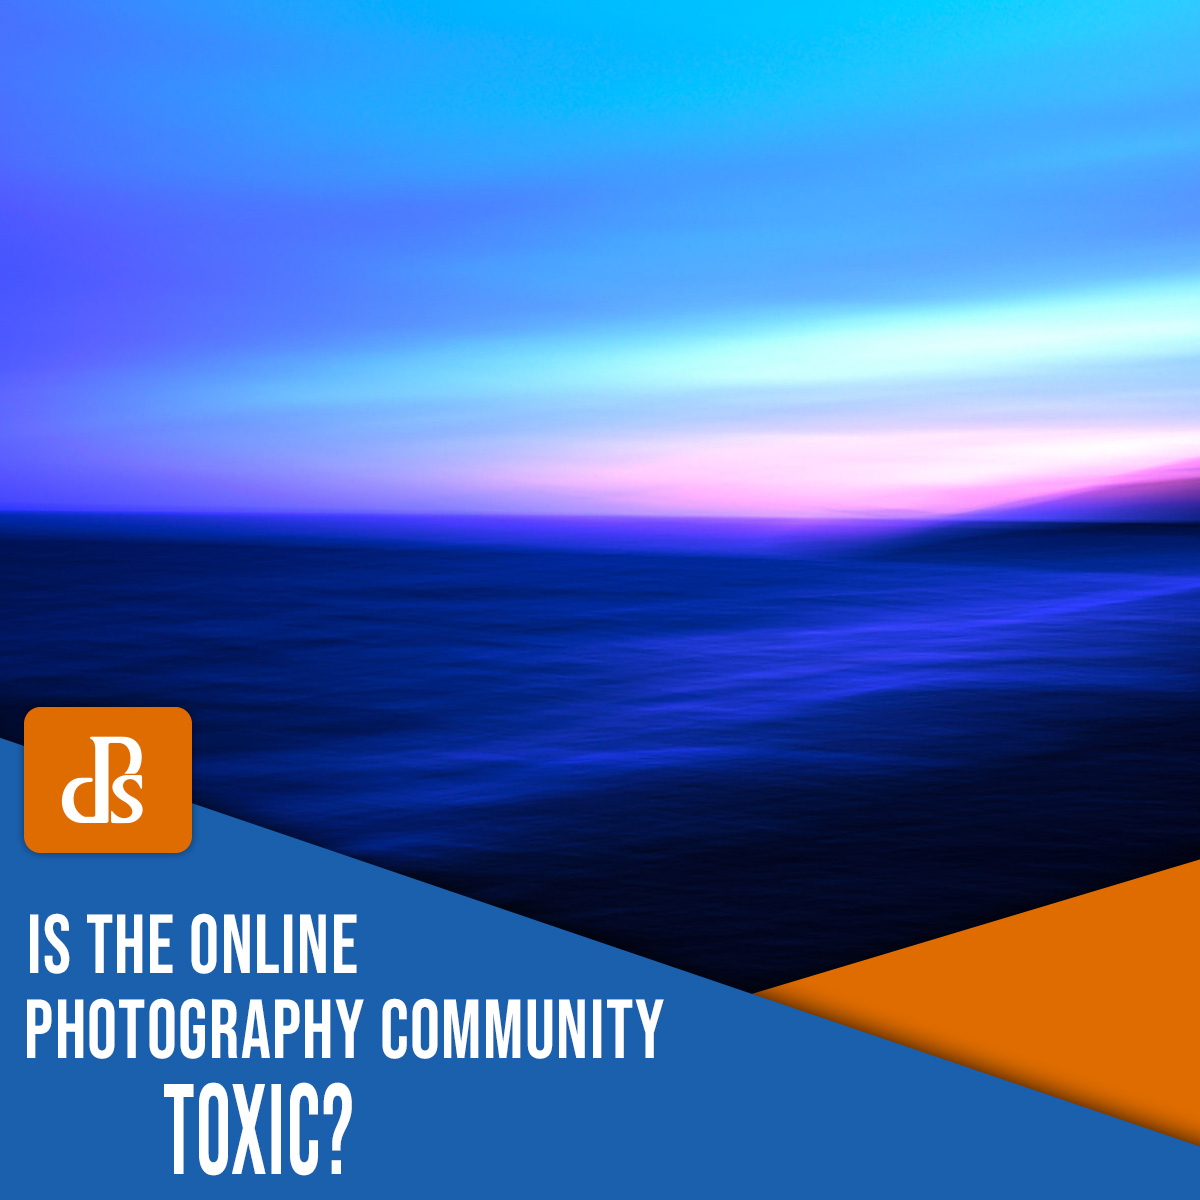 is the online photography community toxic?